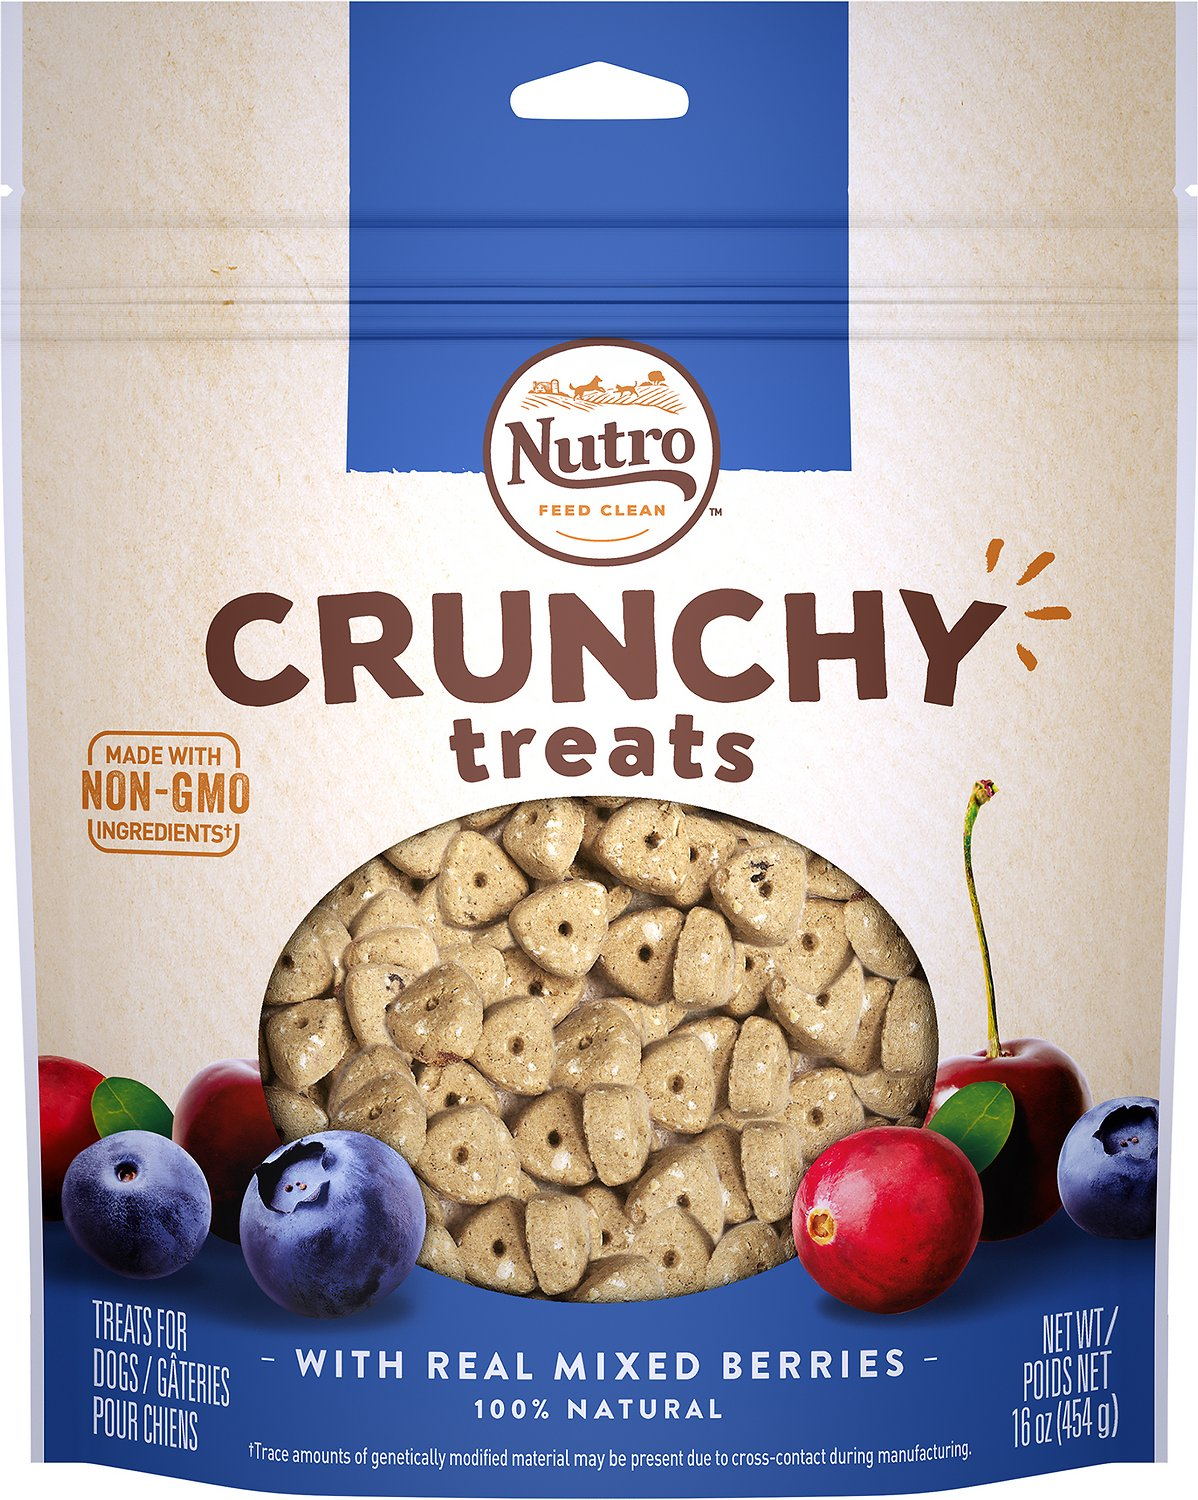 Nutro Crunchy with Real Mixed Berries Dog Treats Image